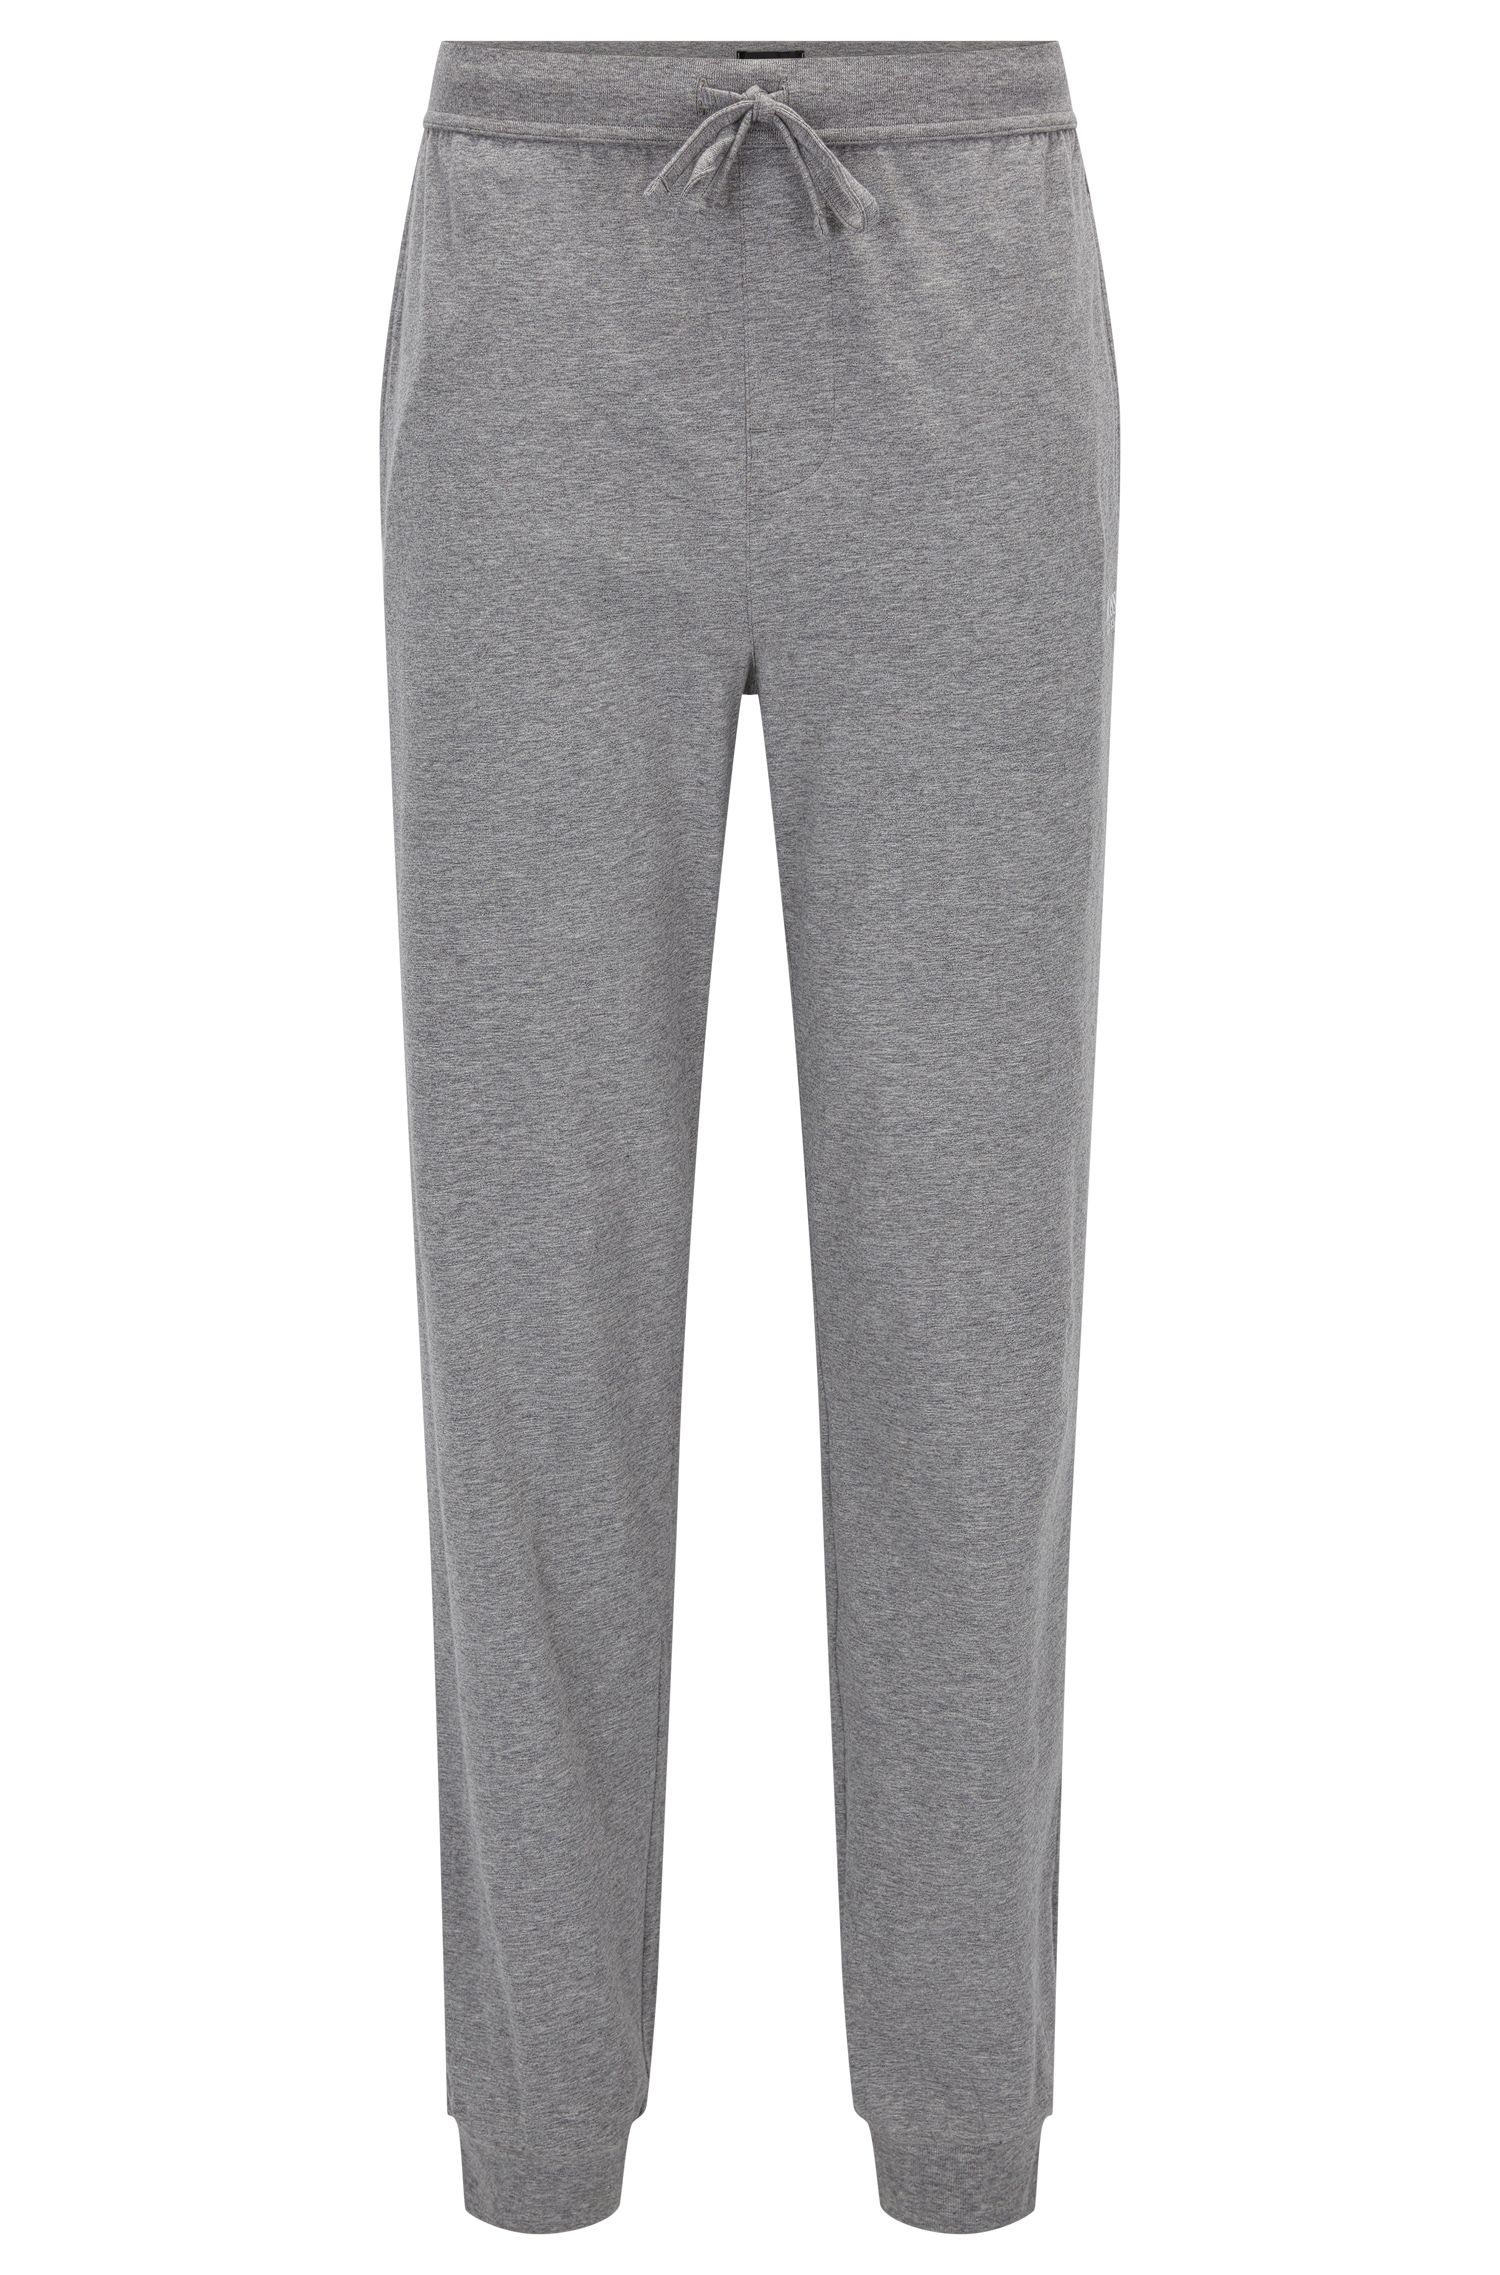 Cuffed Stretch Cotton Sweatpant | Long Pant CW Cuffs